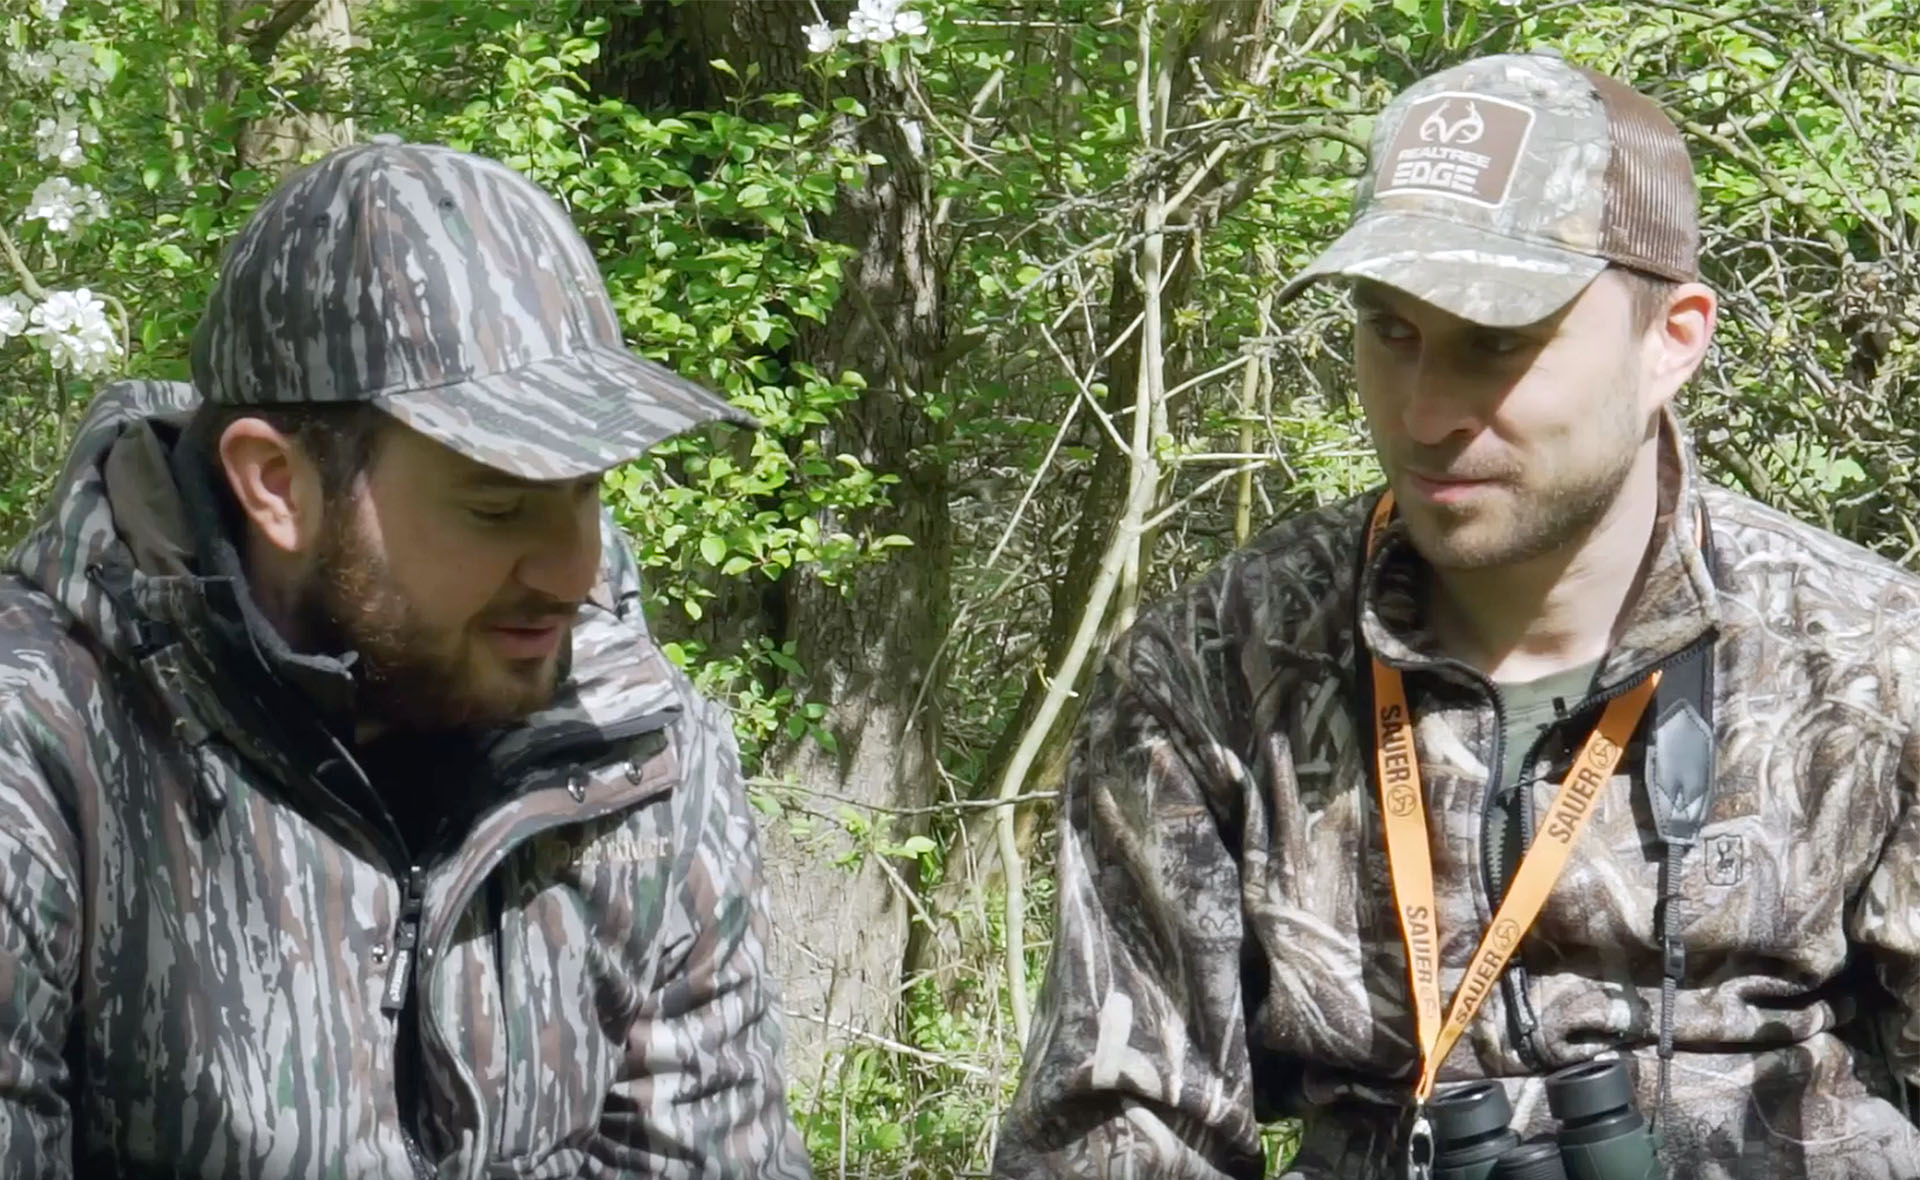 Frederic and Frank in Realtree camo